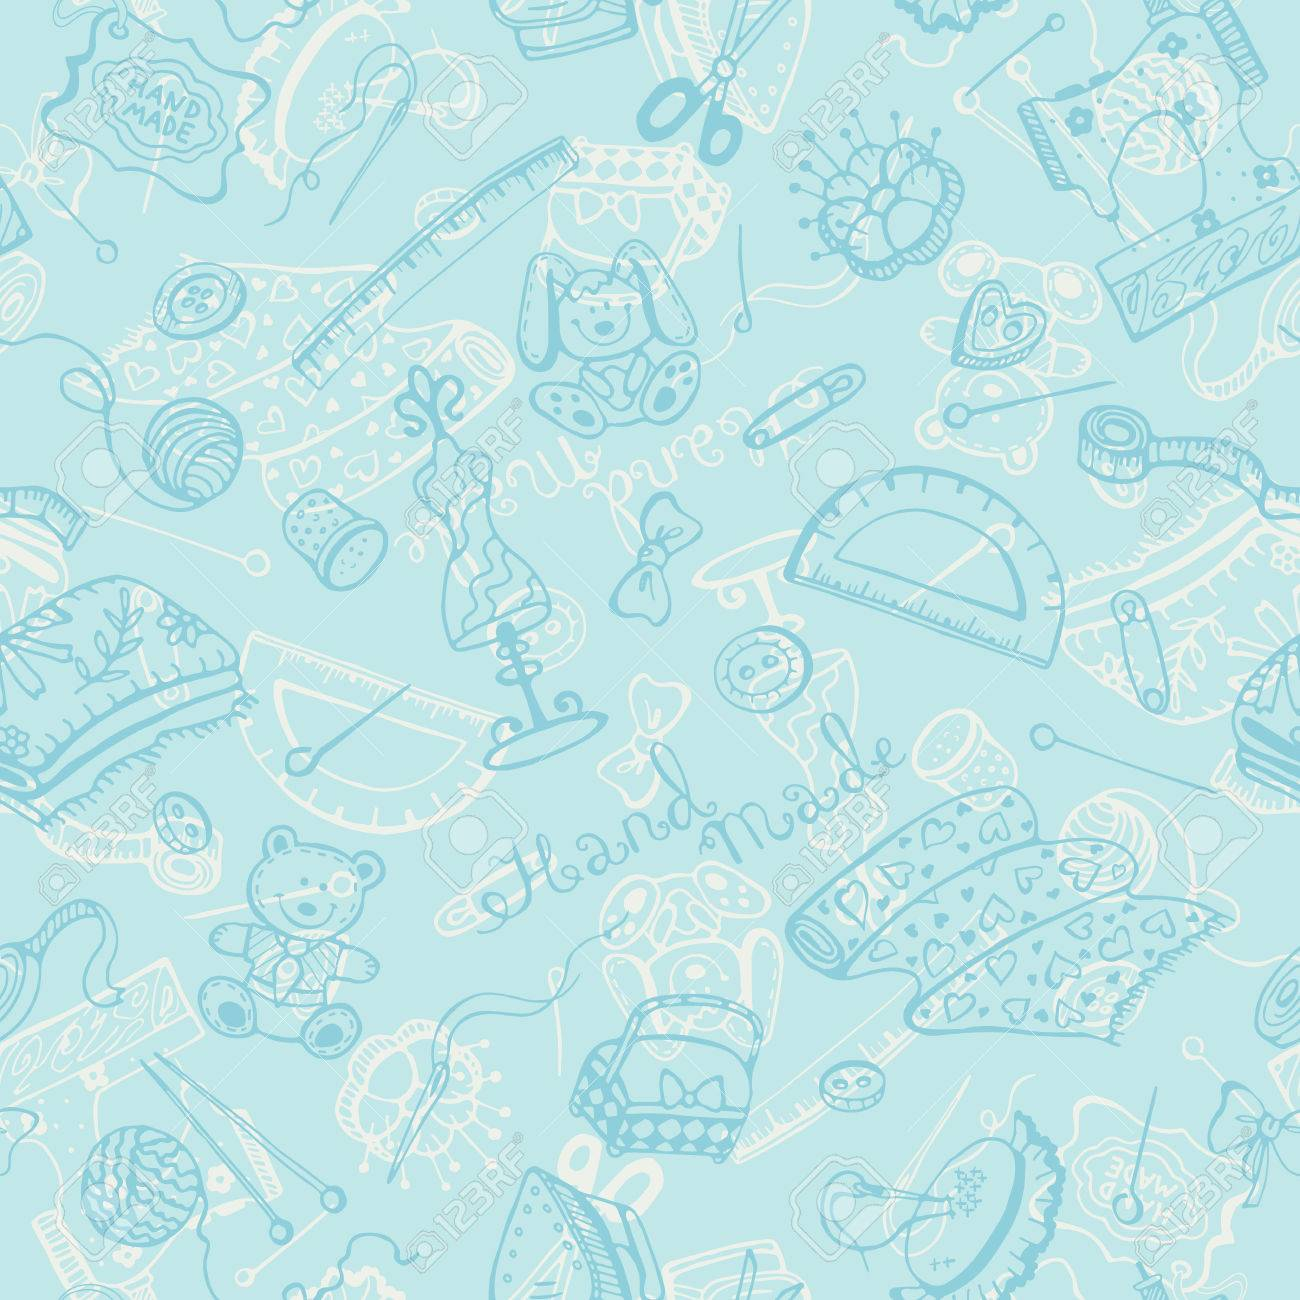 Handmade Items Background Craft Tools Seamless Pattern Royalty Free